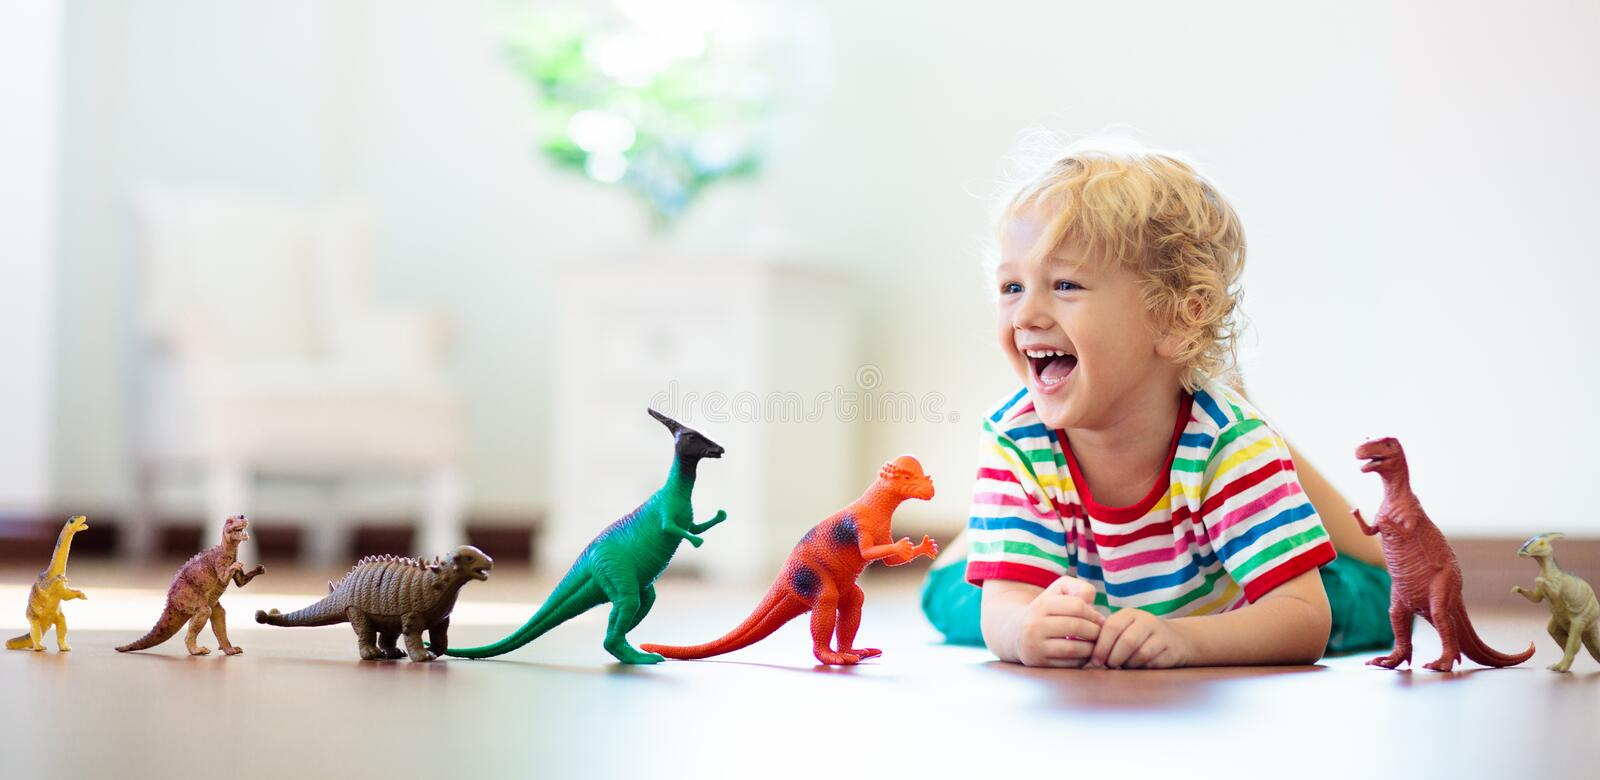 Child playing with toy dinosaurs. Kids toys royalty free stock photo